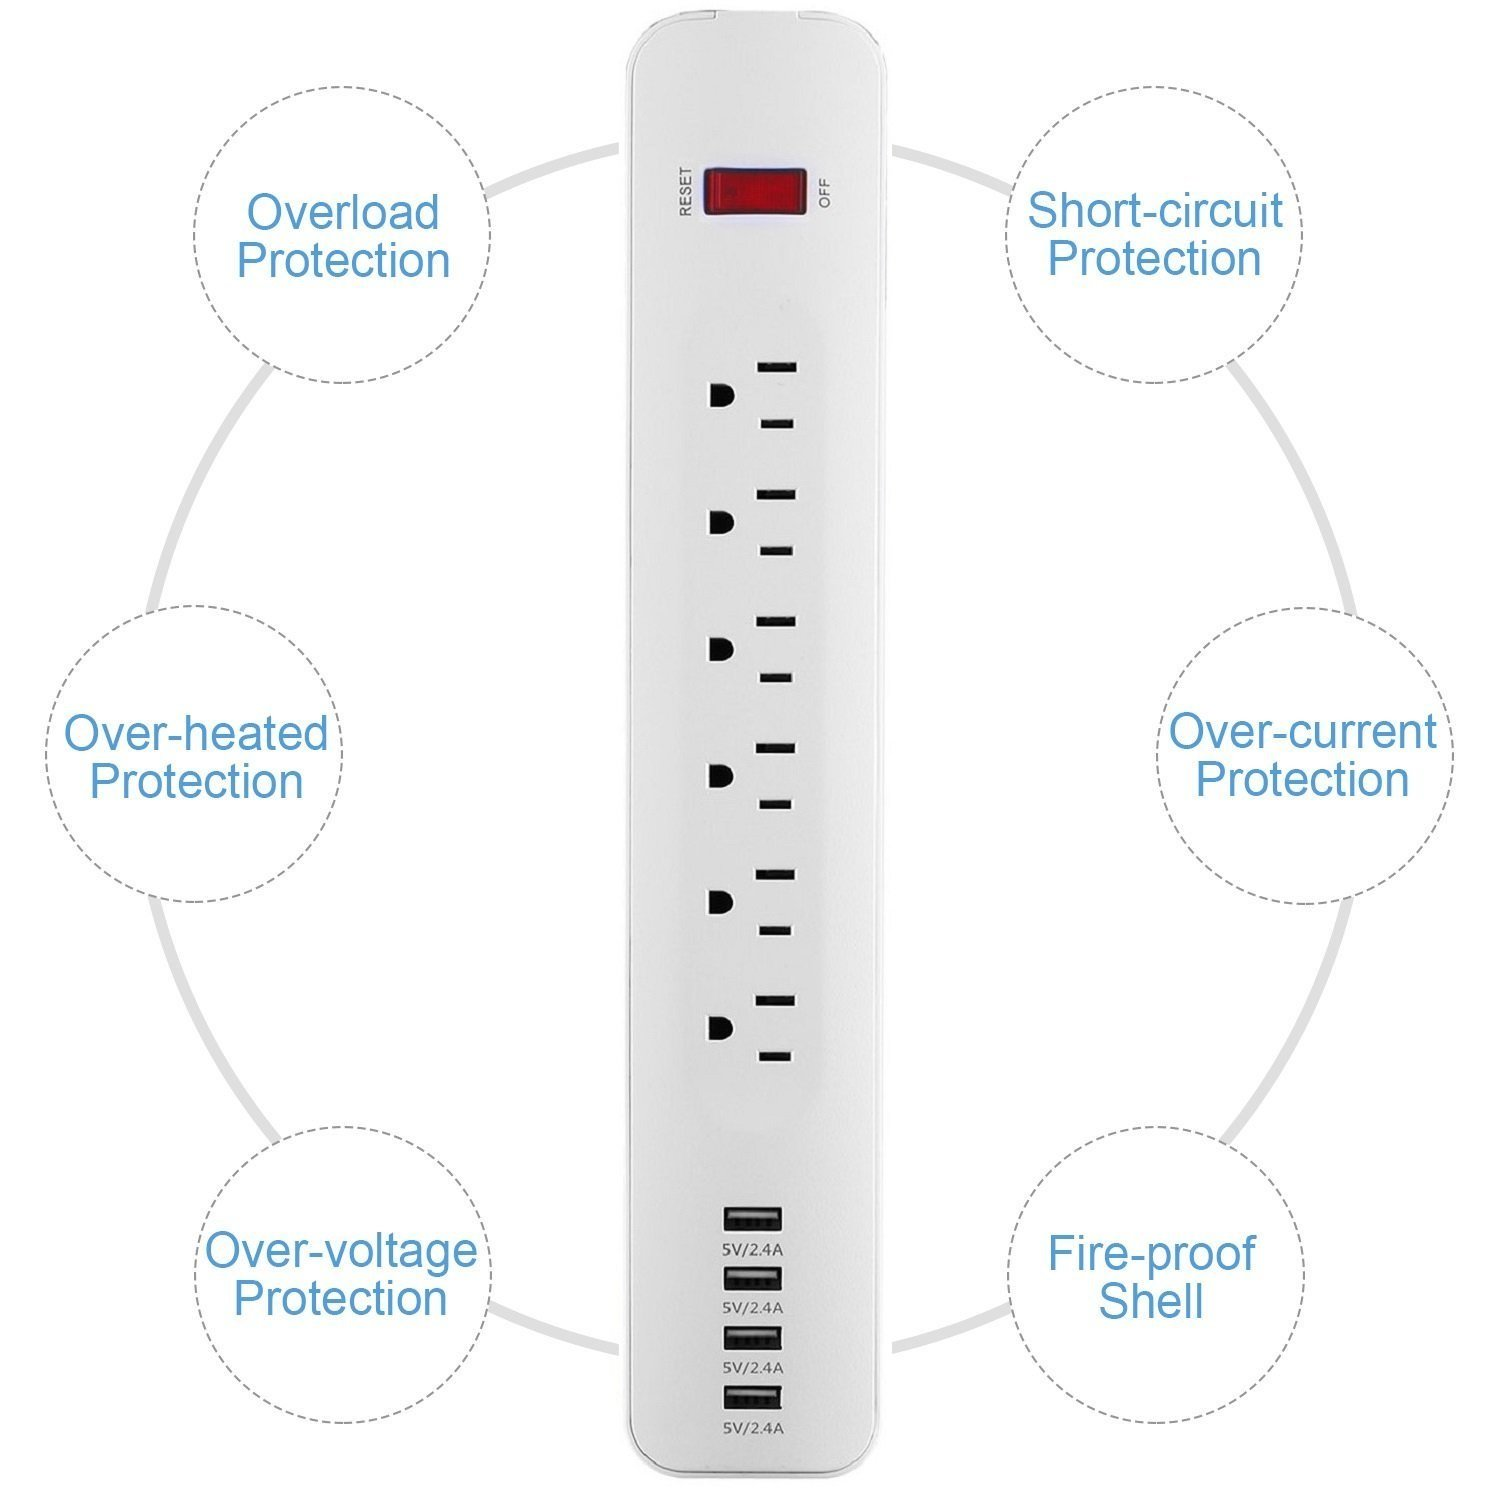 Gomyhom Power Strip 6 Outlet Surge Protector With 4 Usb Circuit Diagram Of Over Voltage Charging Ports 5v 24a 300 Joule Feet Long Cord For Home Office White Electronics